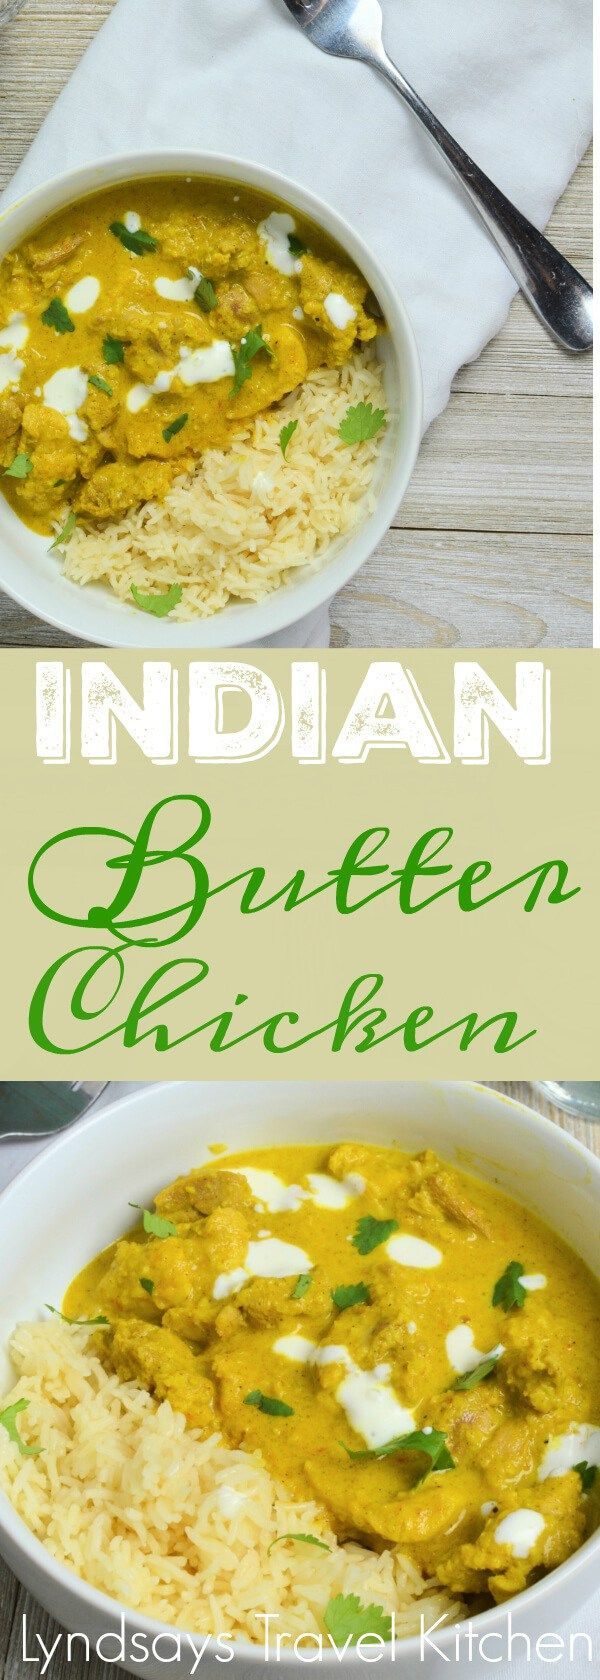 Mild Butter Chicken Recipe. Indian Food. Get the Recipe from www.lyndsaystravelkitchen.com